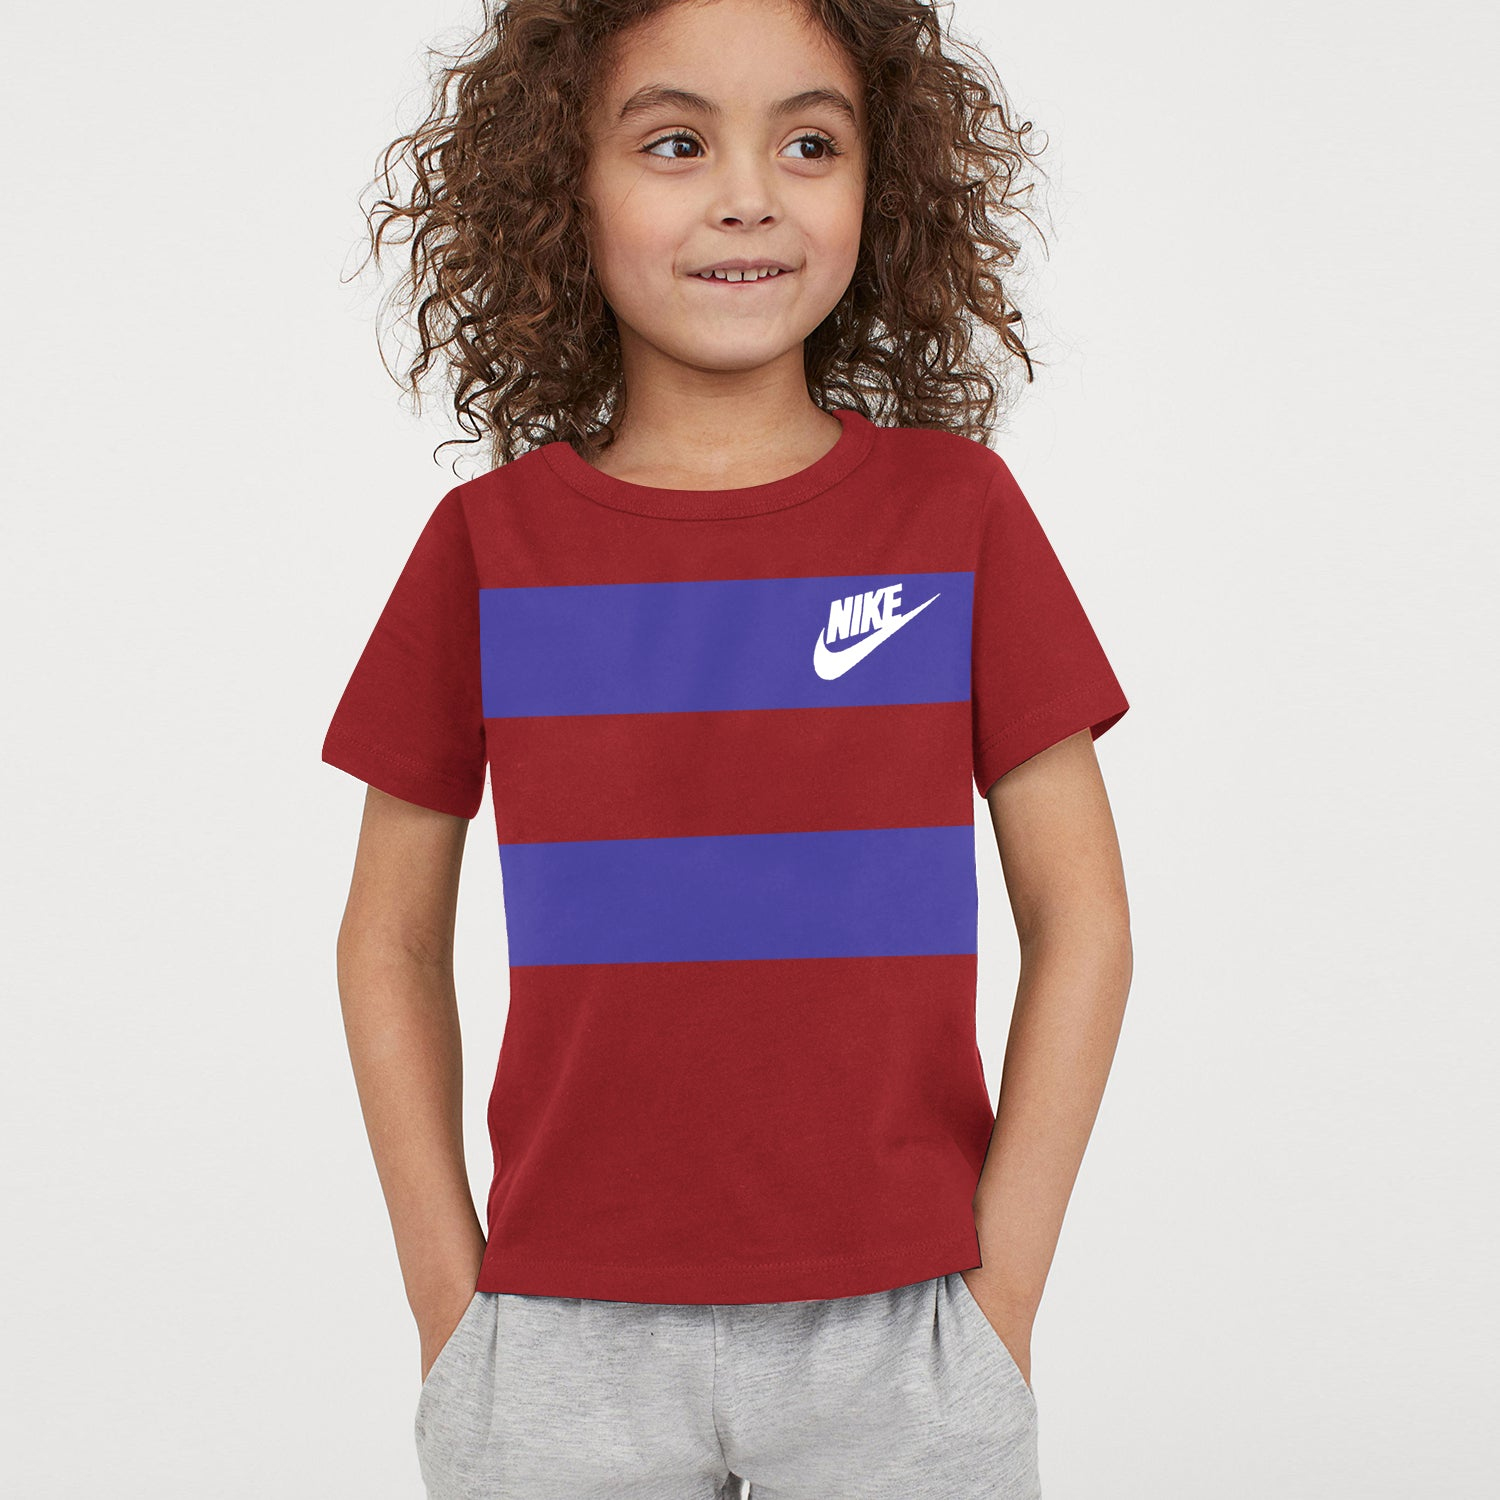 NK Crew Neck Single Jersey Tee Shirt For Kids-Dark Red with Blue Panels-BE12069